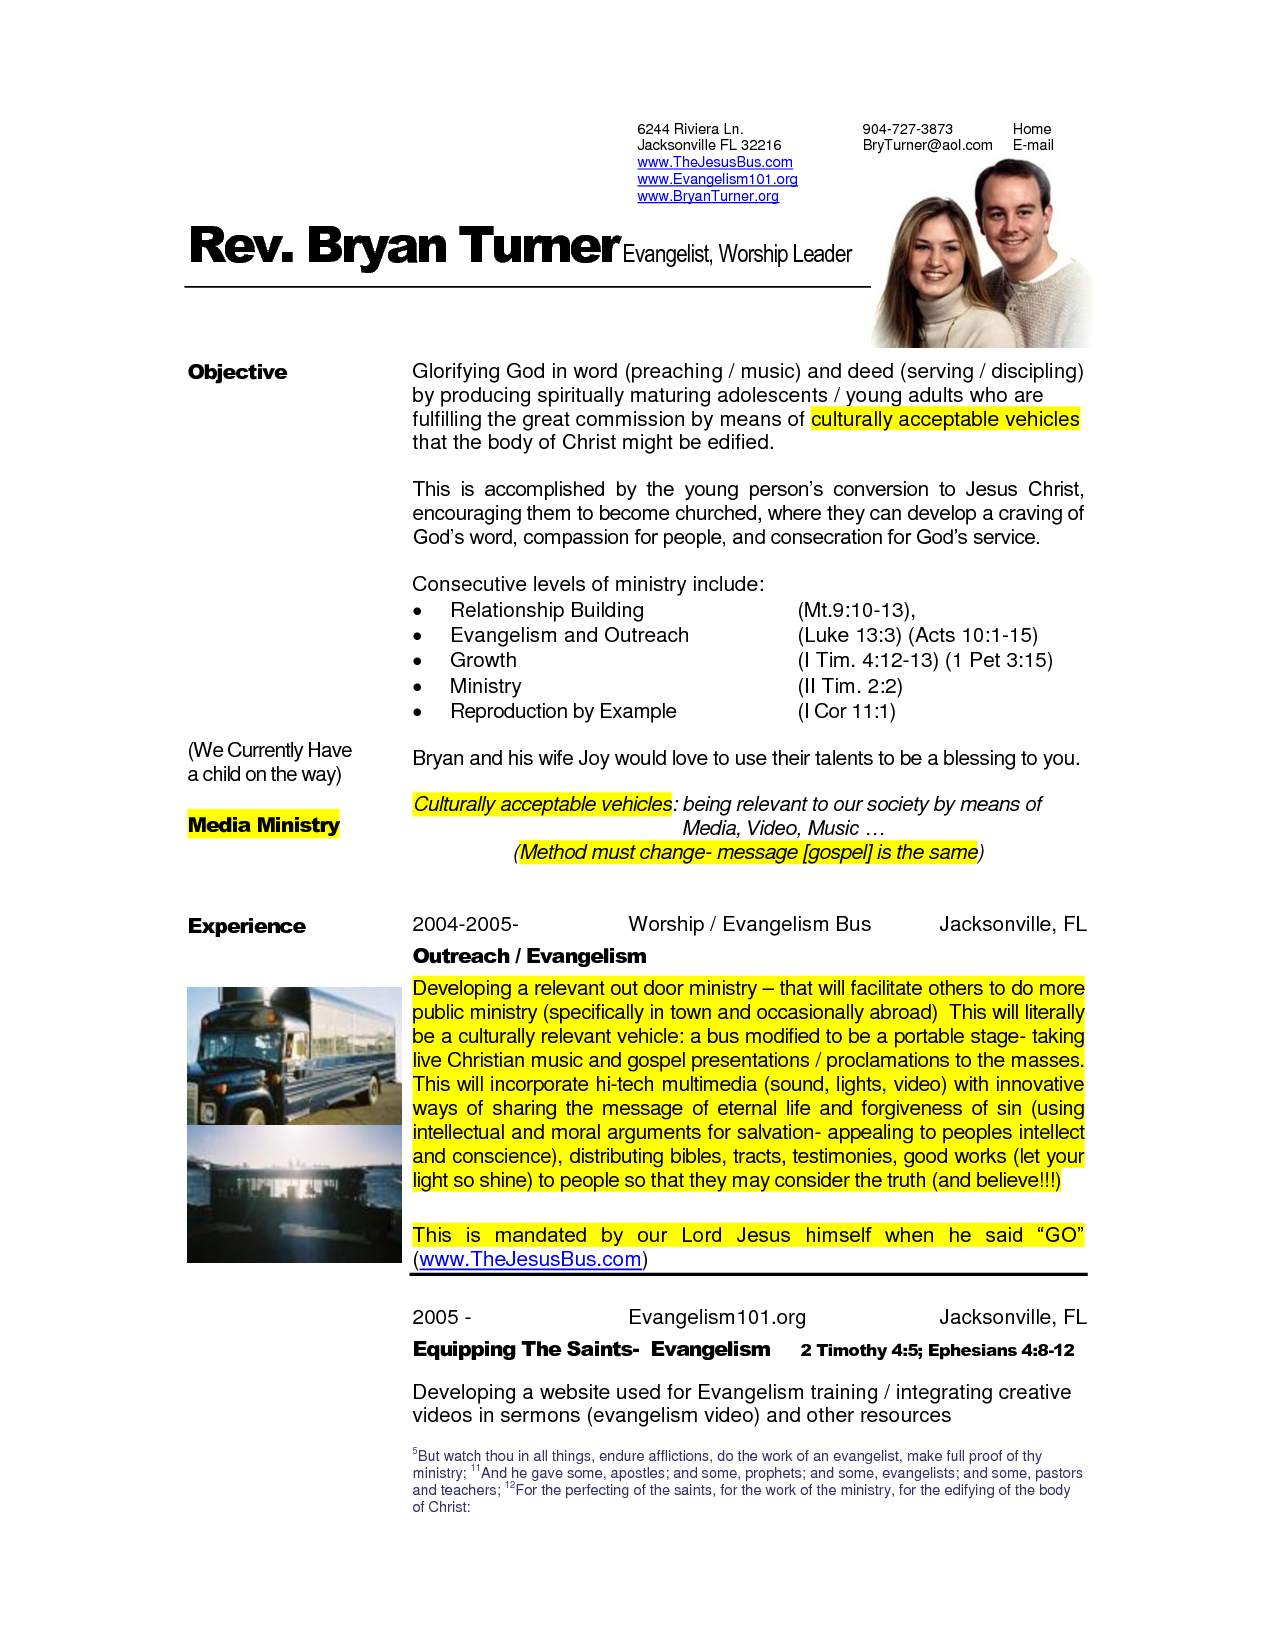 pastor resume youth pastor resume template resources for youth ministry pinterest discover more ideas about youth